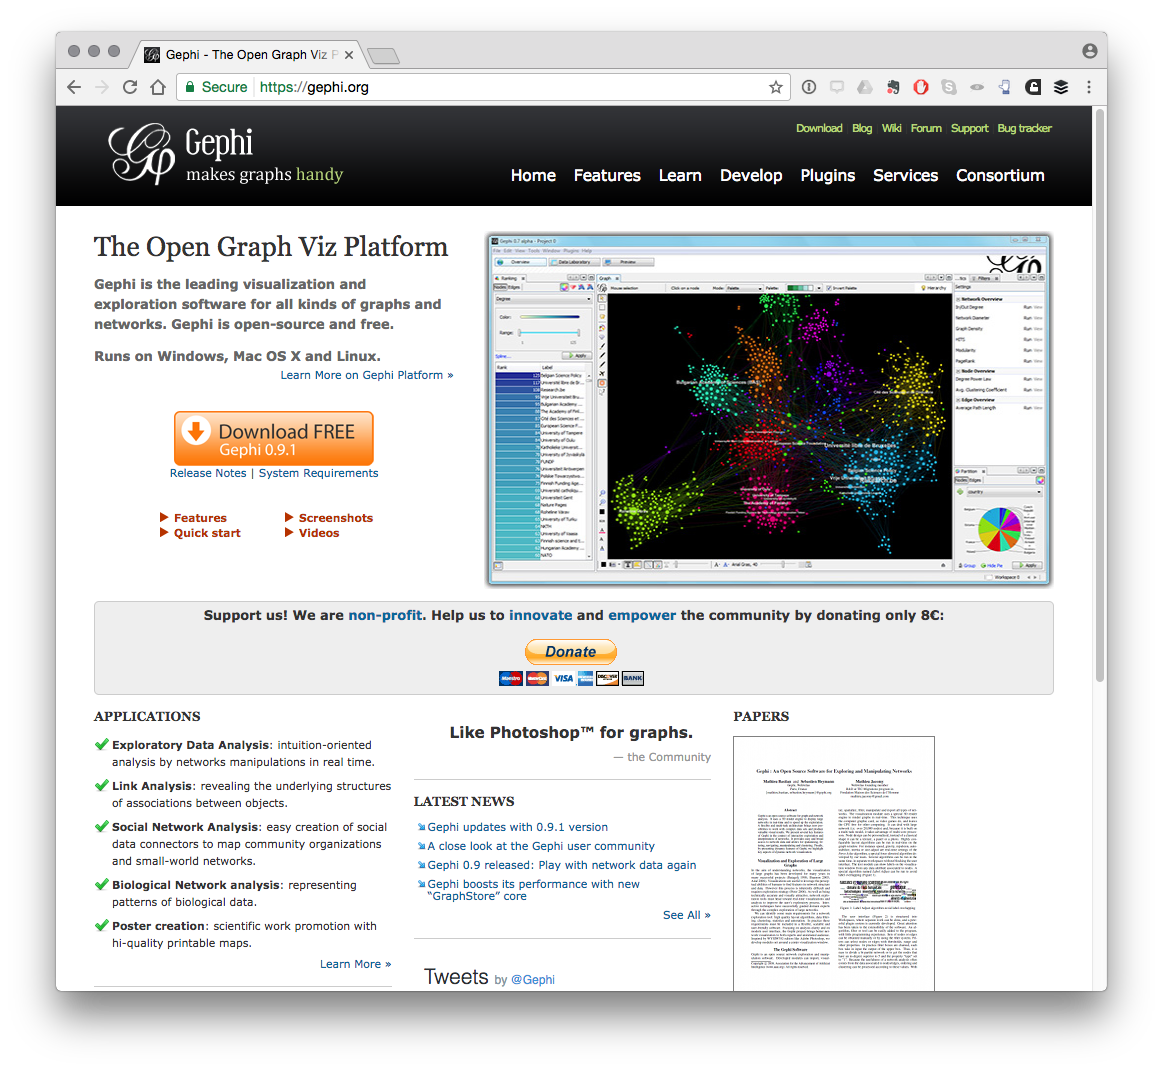 Network Visualisation With Gephi Paul Oldhams Analytics Blog Here Is A Wiring Diagram That I Found Online It Looks Exactly Like You Can Read The Chapter In Electronic Book Format And Find All Materials Including Presentations At Wipo Github Homepage